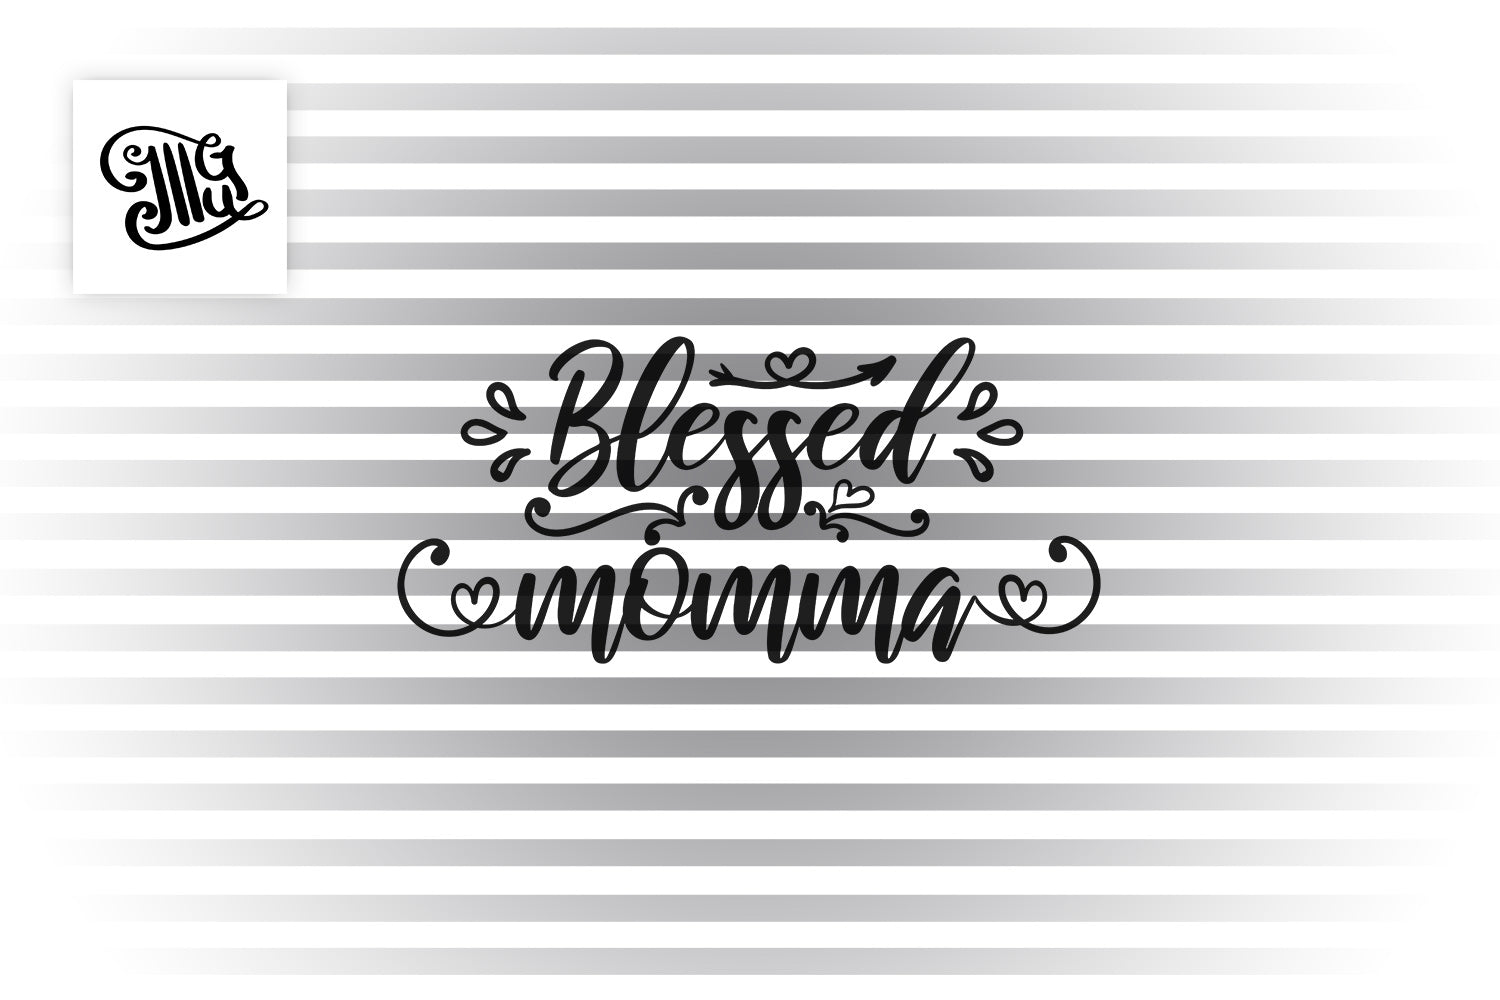 Free Choose from 3600+ mothers day graphic resources and download in the form of png, eps, ai or psd. Blessed Momma Svg Southern Svg Southern Mom Svg Mothers Day Svg Illustrator Guru SVG, PNG, EPS, DXF File